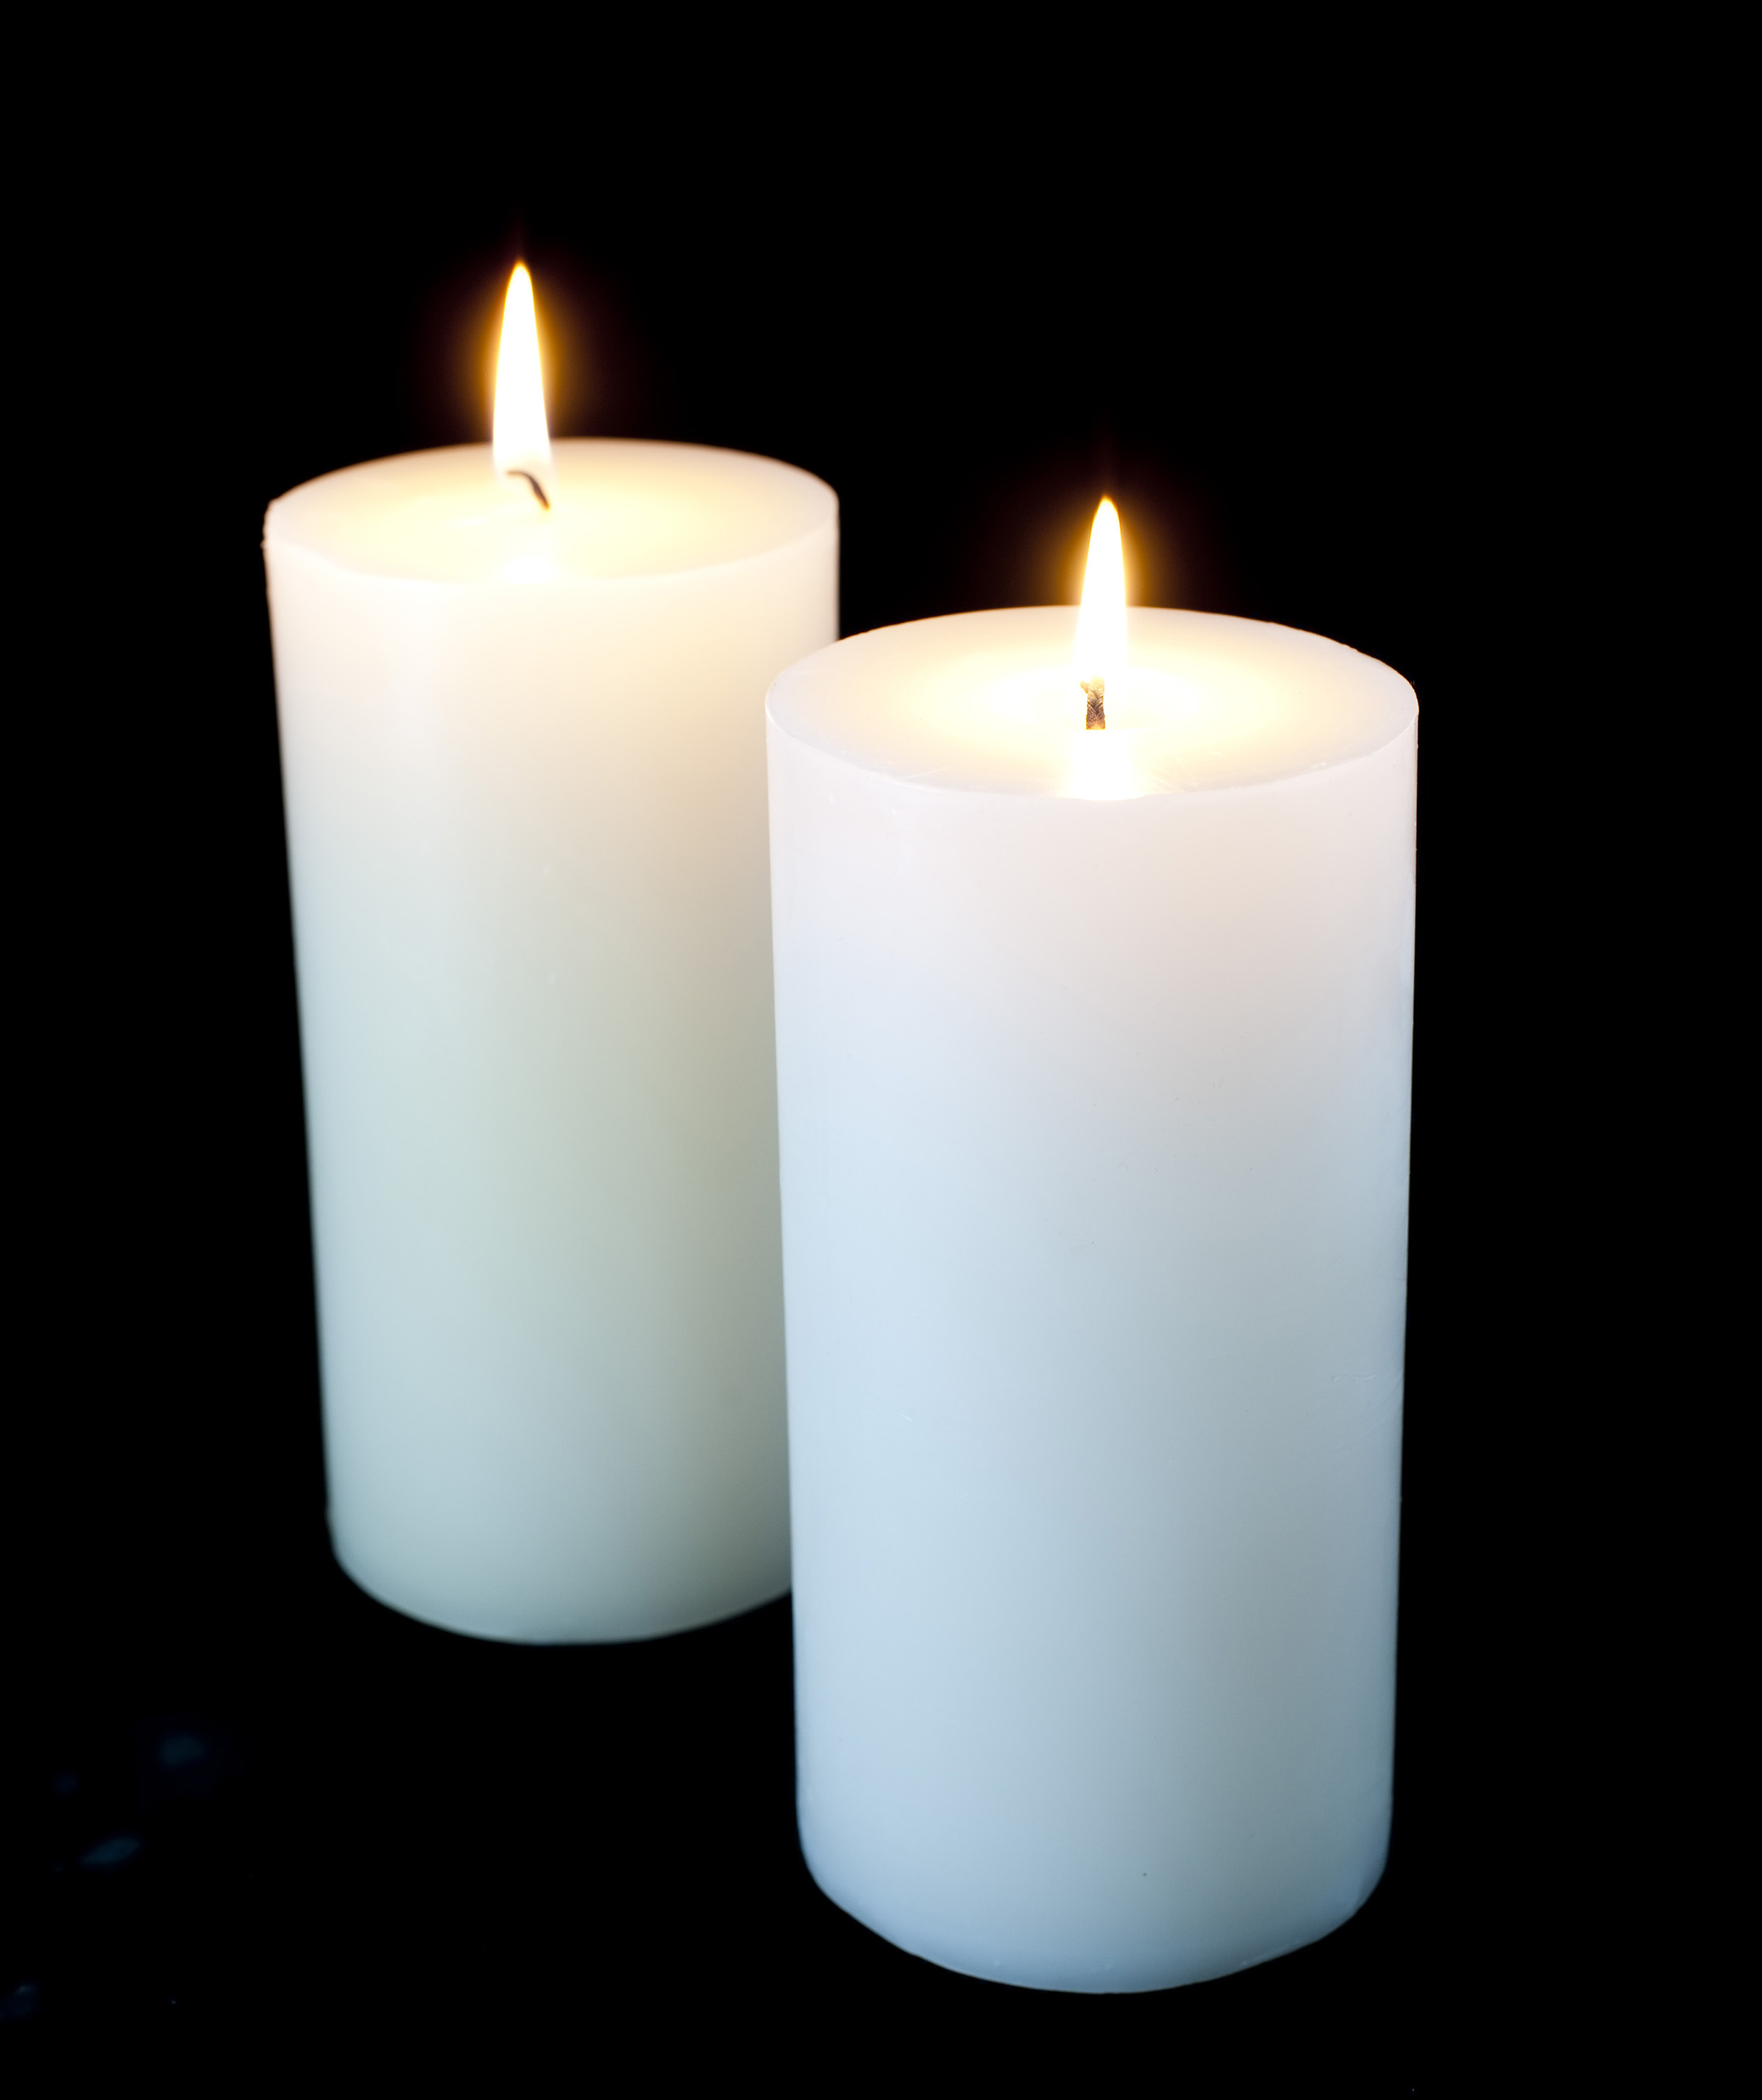 Christmas Candles - Burning Candle PNG HD